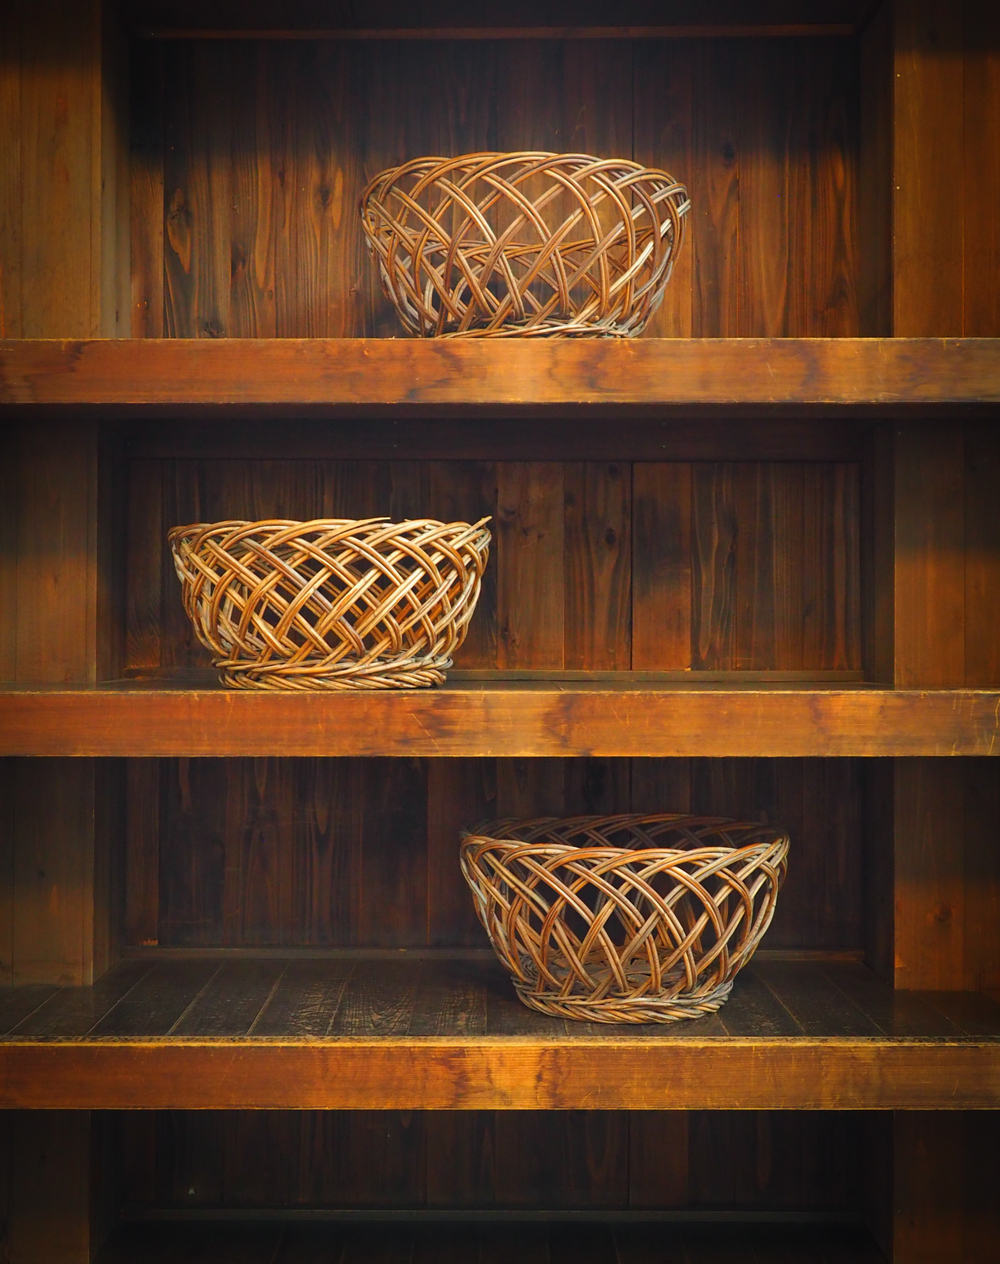 baskets in the public bath